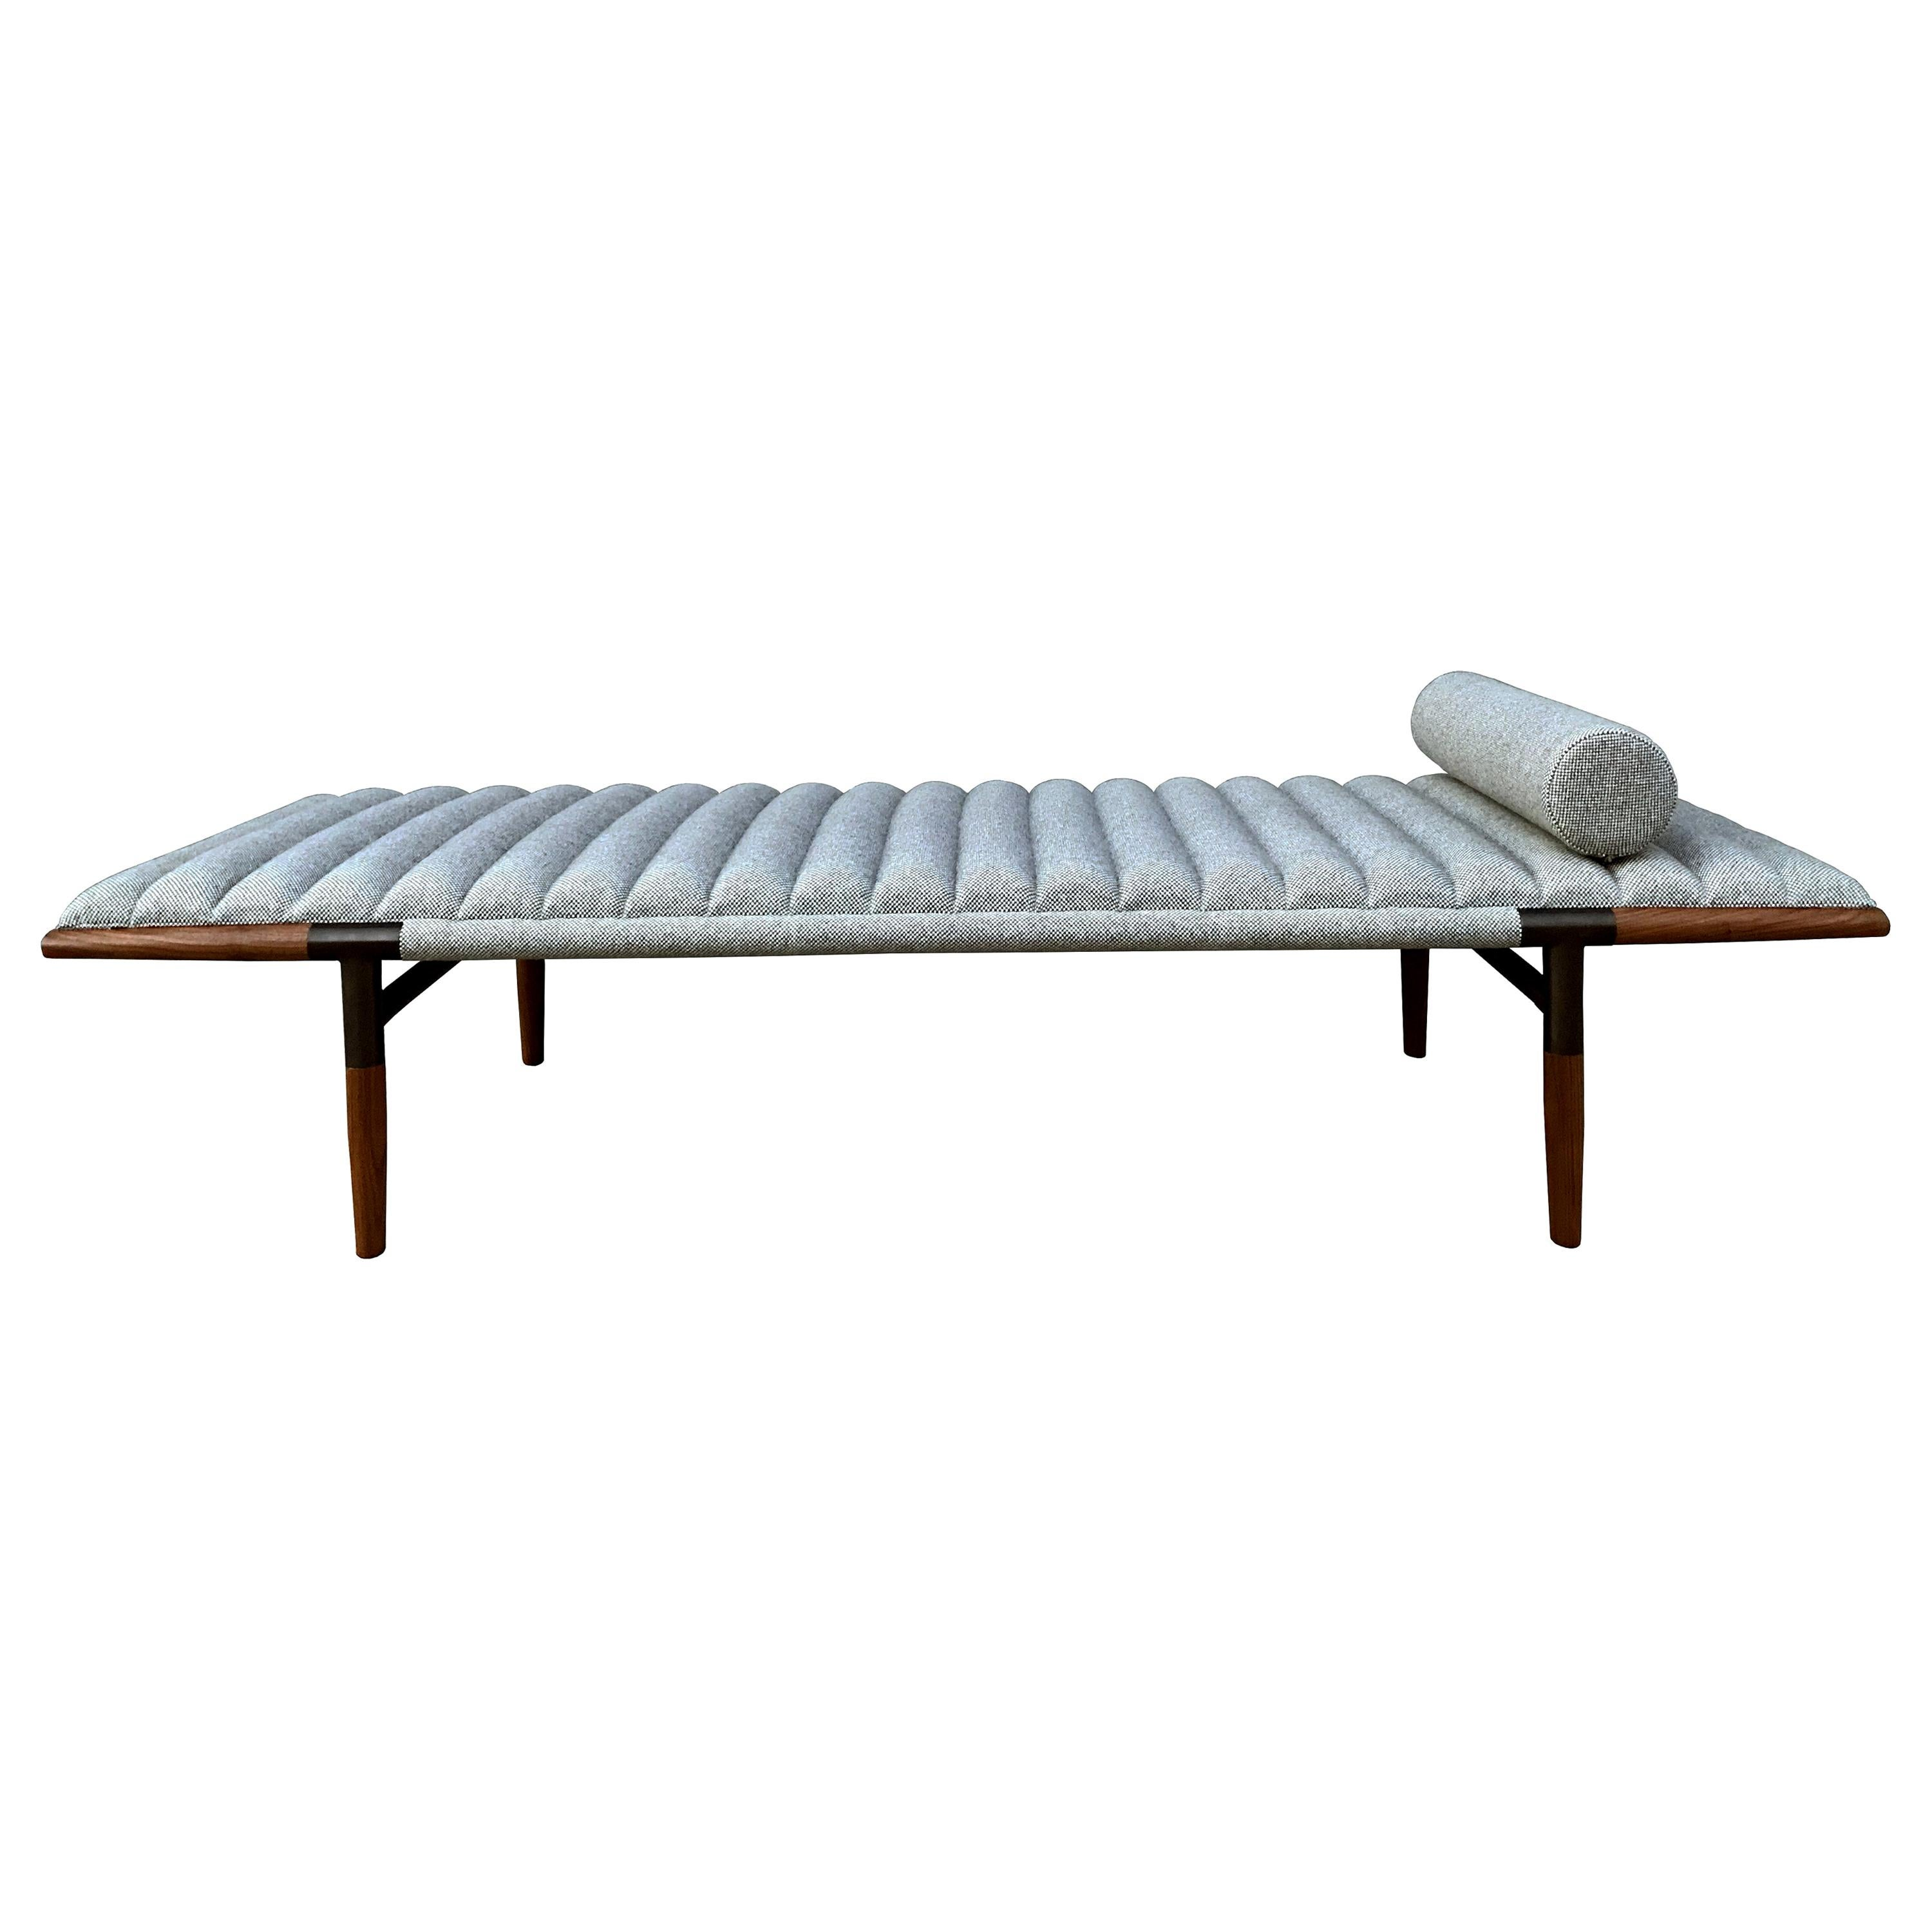 EÆ Daybed in Fortuny Wool, Walnut and Blackened Brass by Erickson Aesthetics